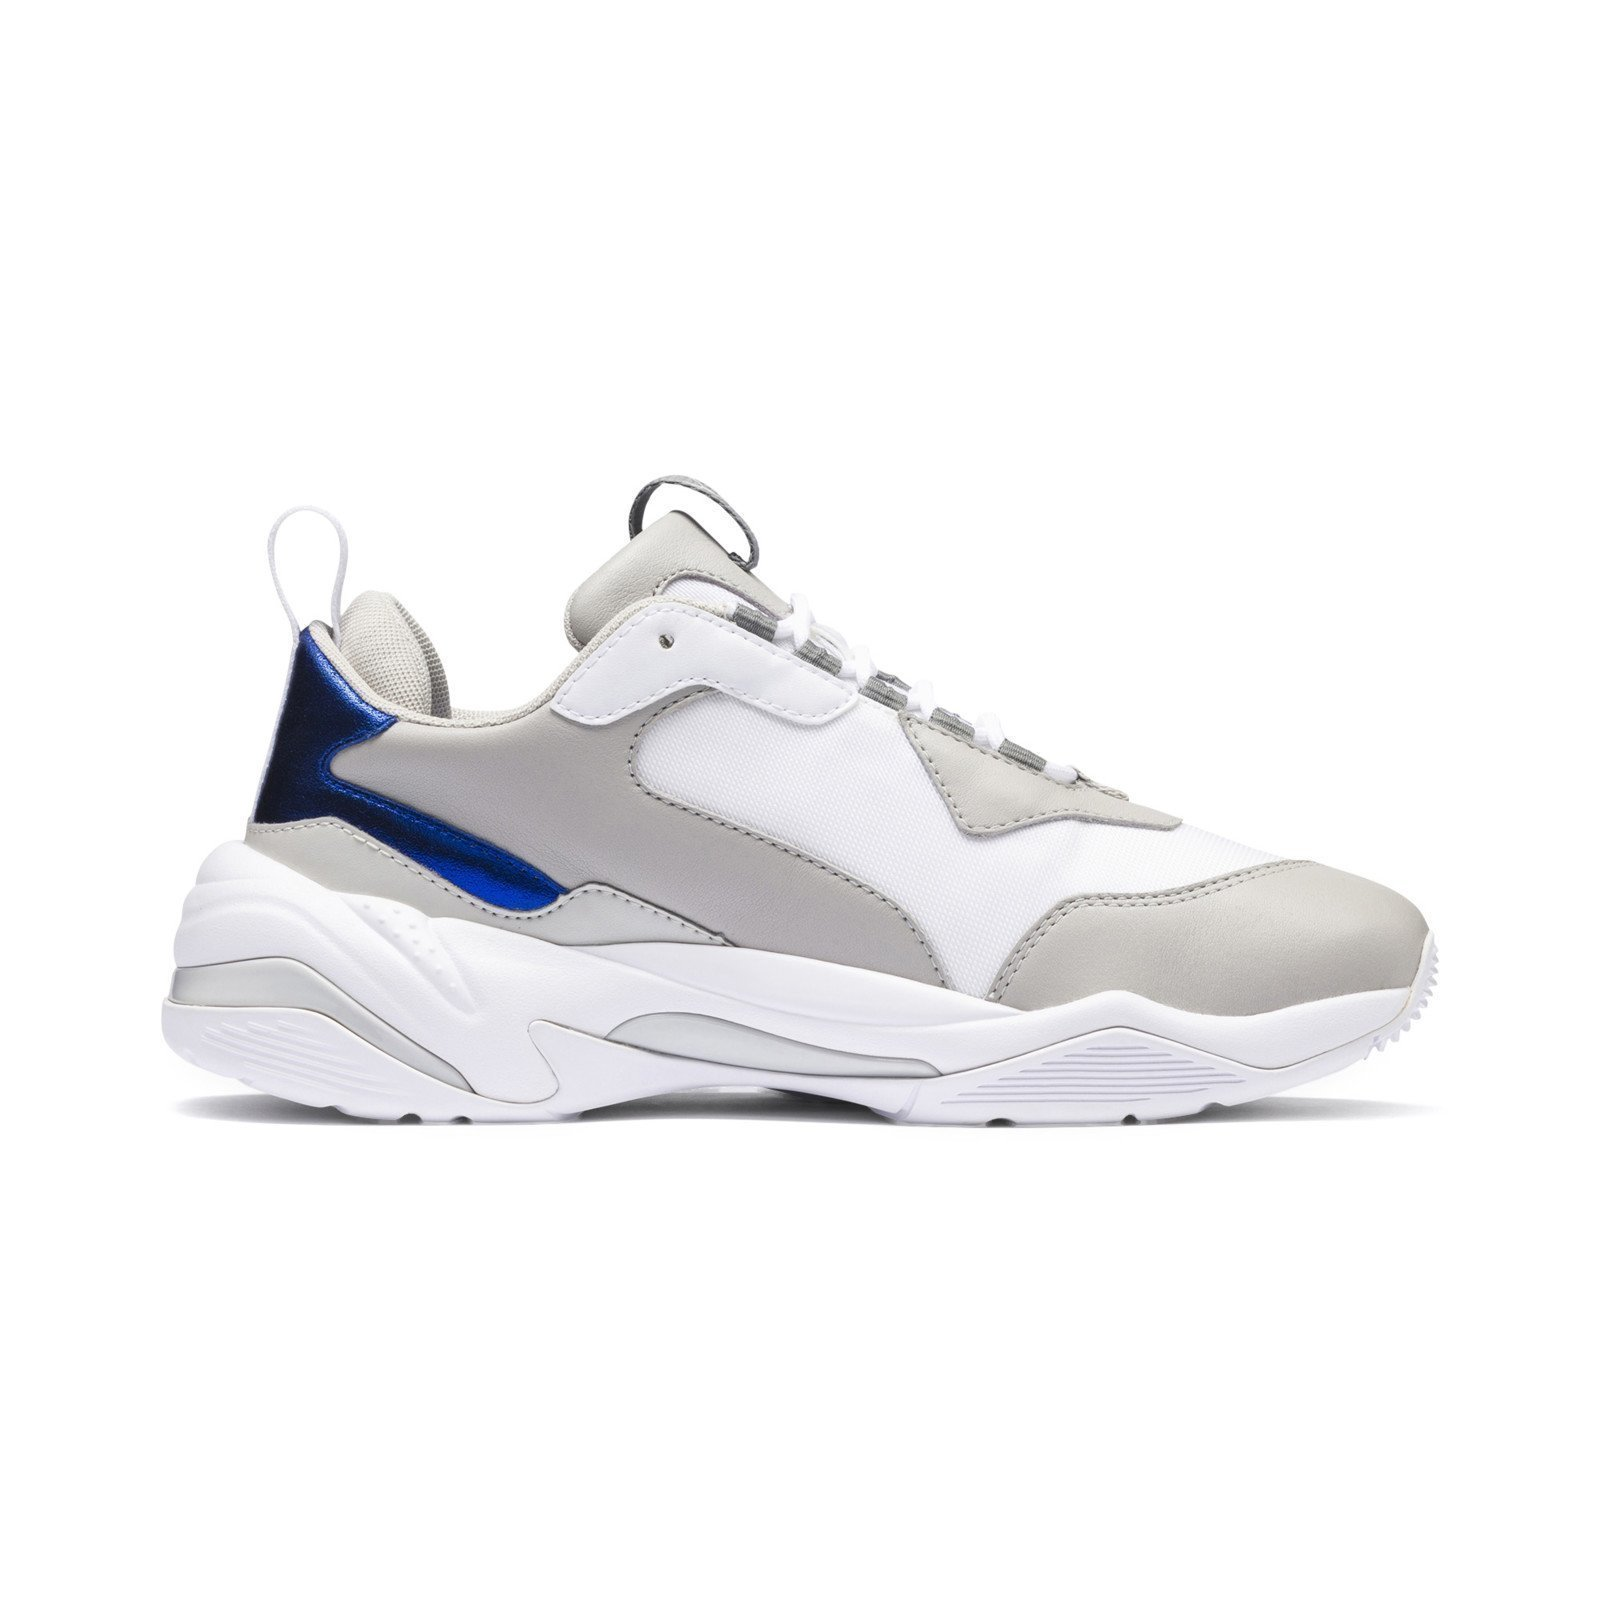 Puma Thunder Electric 'White Silver' (367998-02)